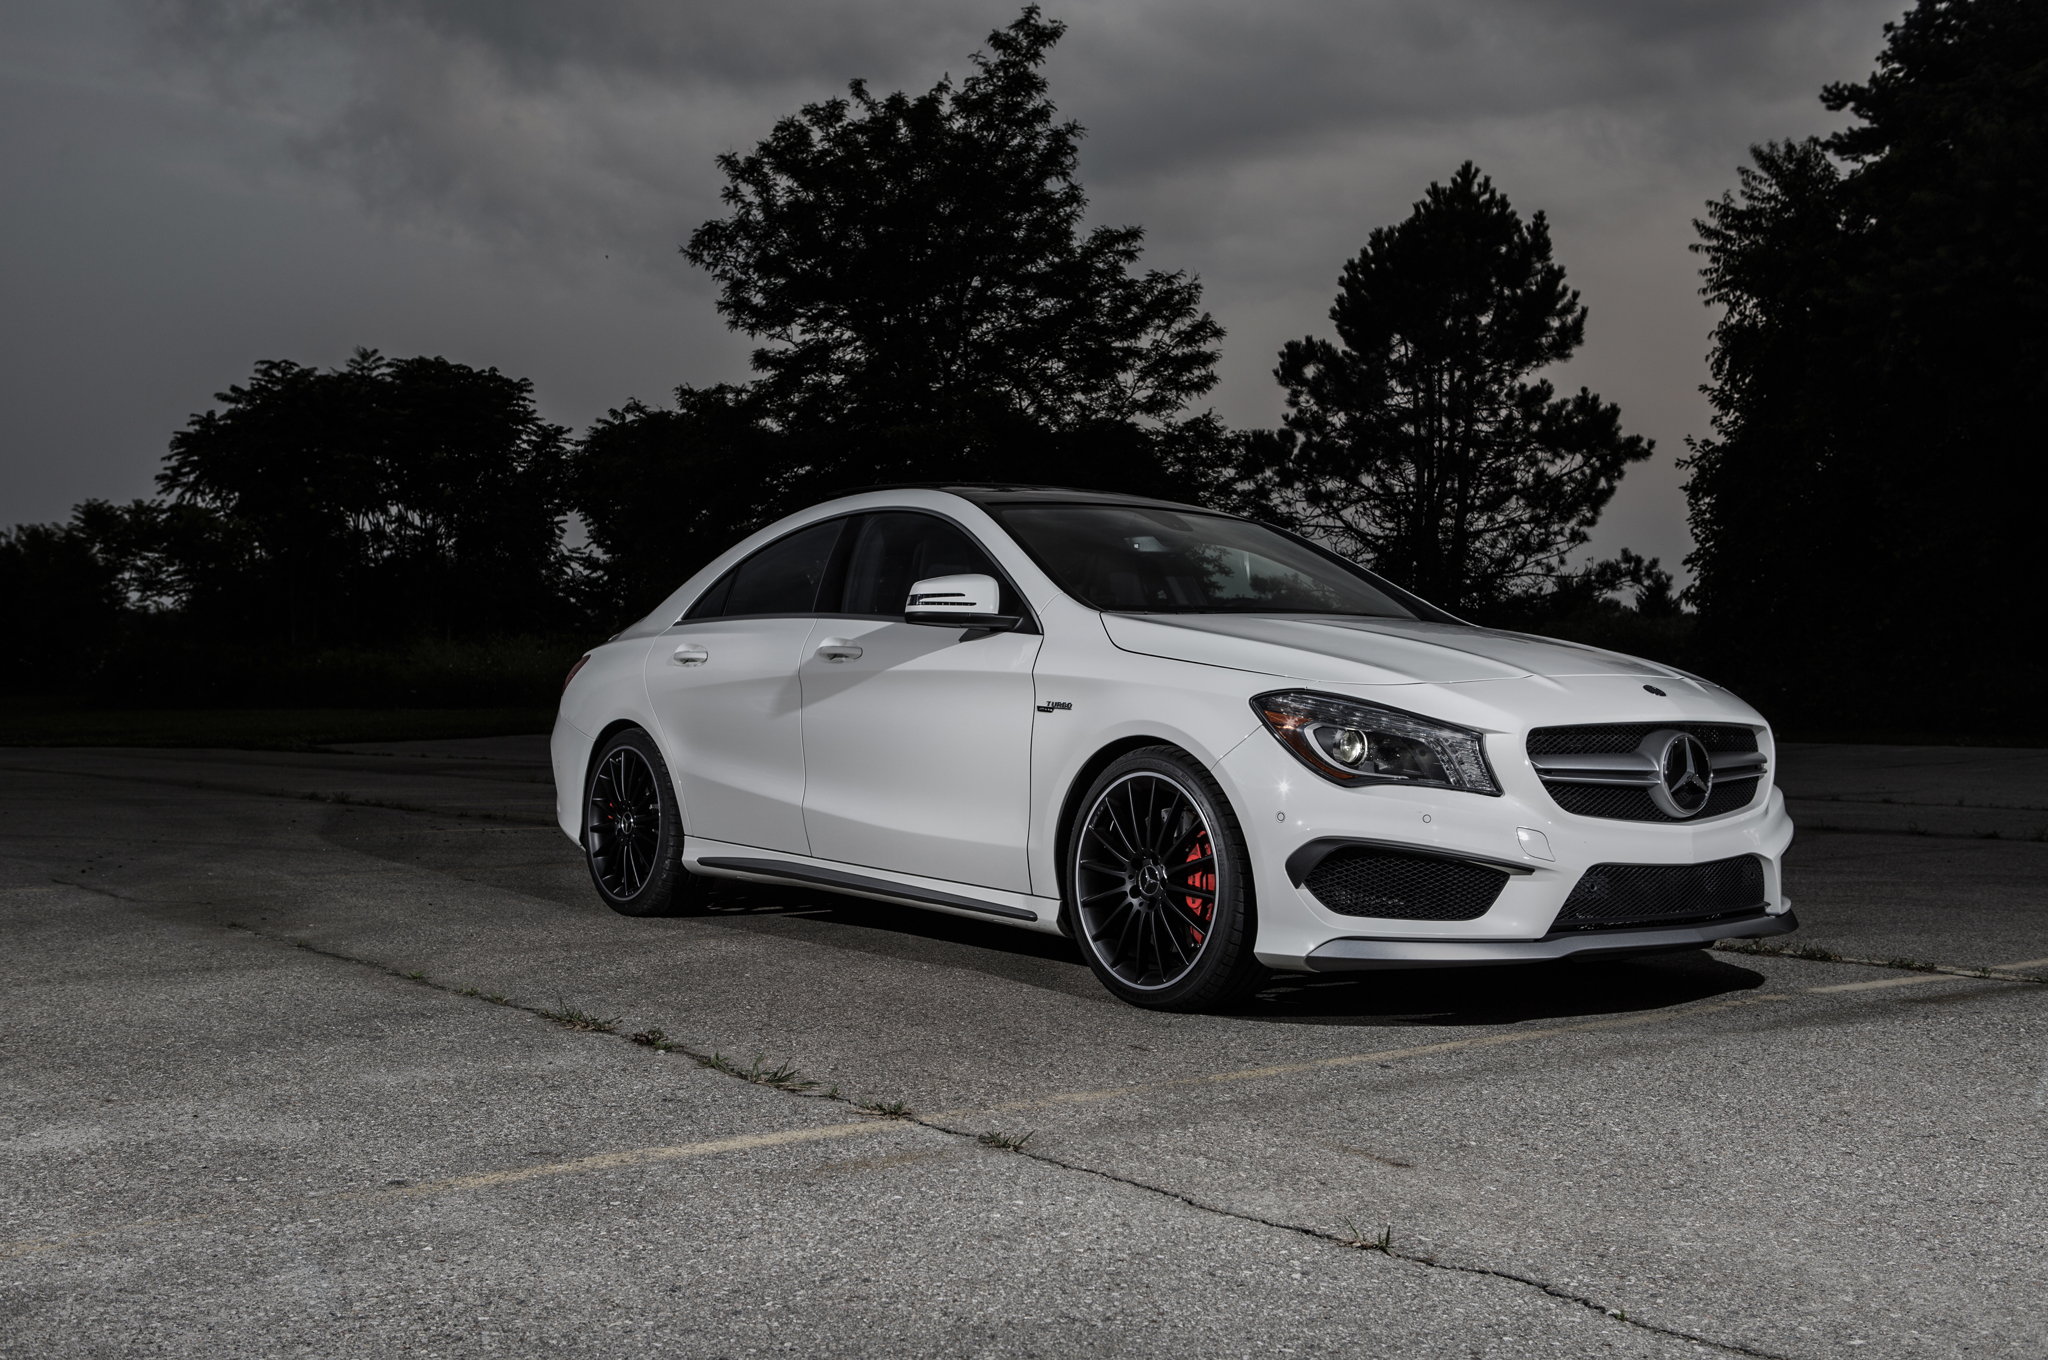 college-cars-07-2014-mercedes-benz-cla45-amg-front